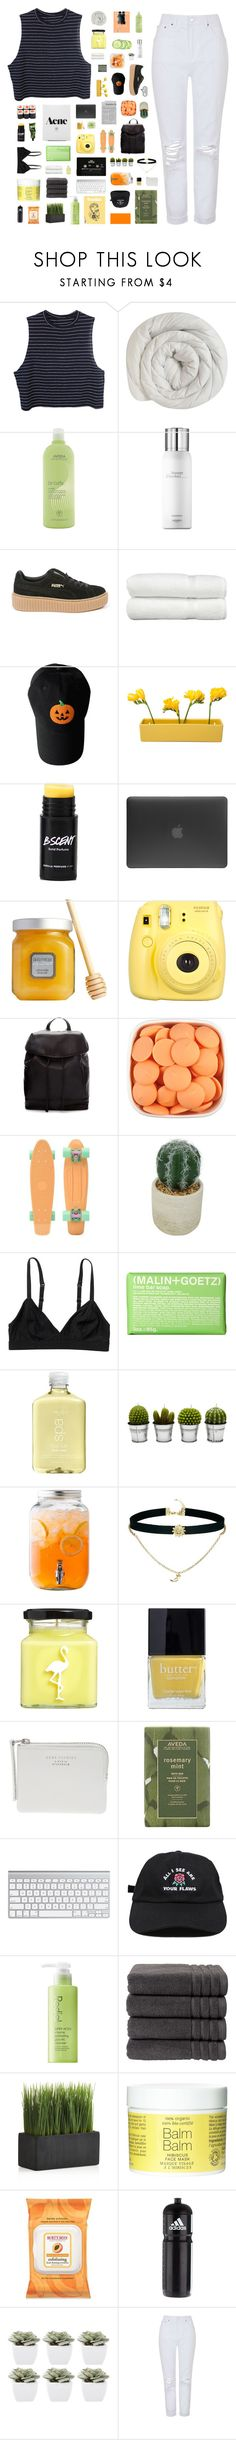 """come here i'm your paradise"" by novemberkook ❤ liked on Polyvore featuring Aveda, Hermès, Puma, Linum Home Textiles, Dot & Bo, Incase, Laura Mercier, Fujifilm, Zara and Threshold"